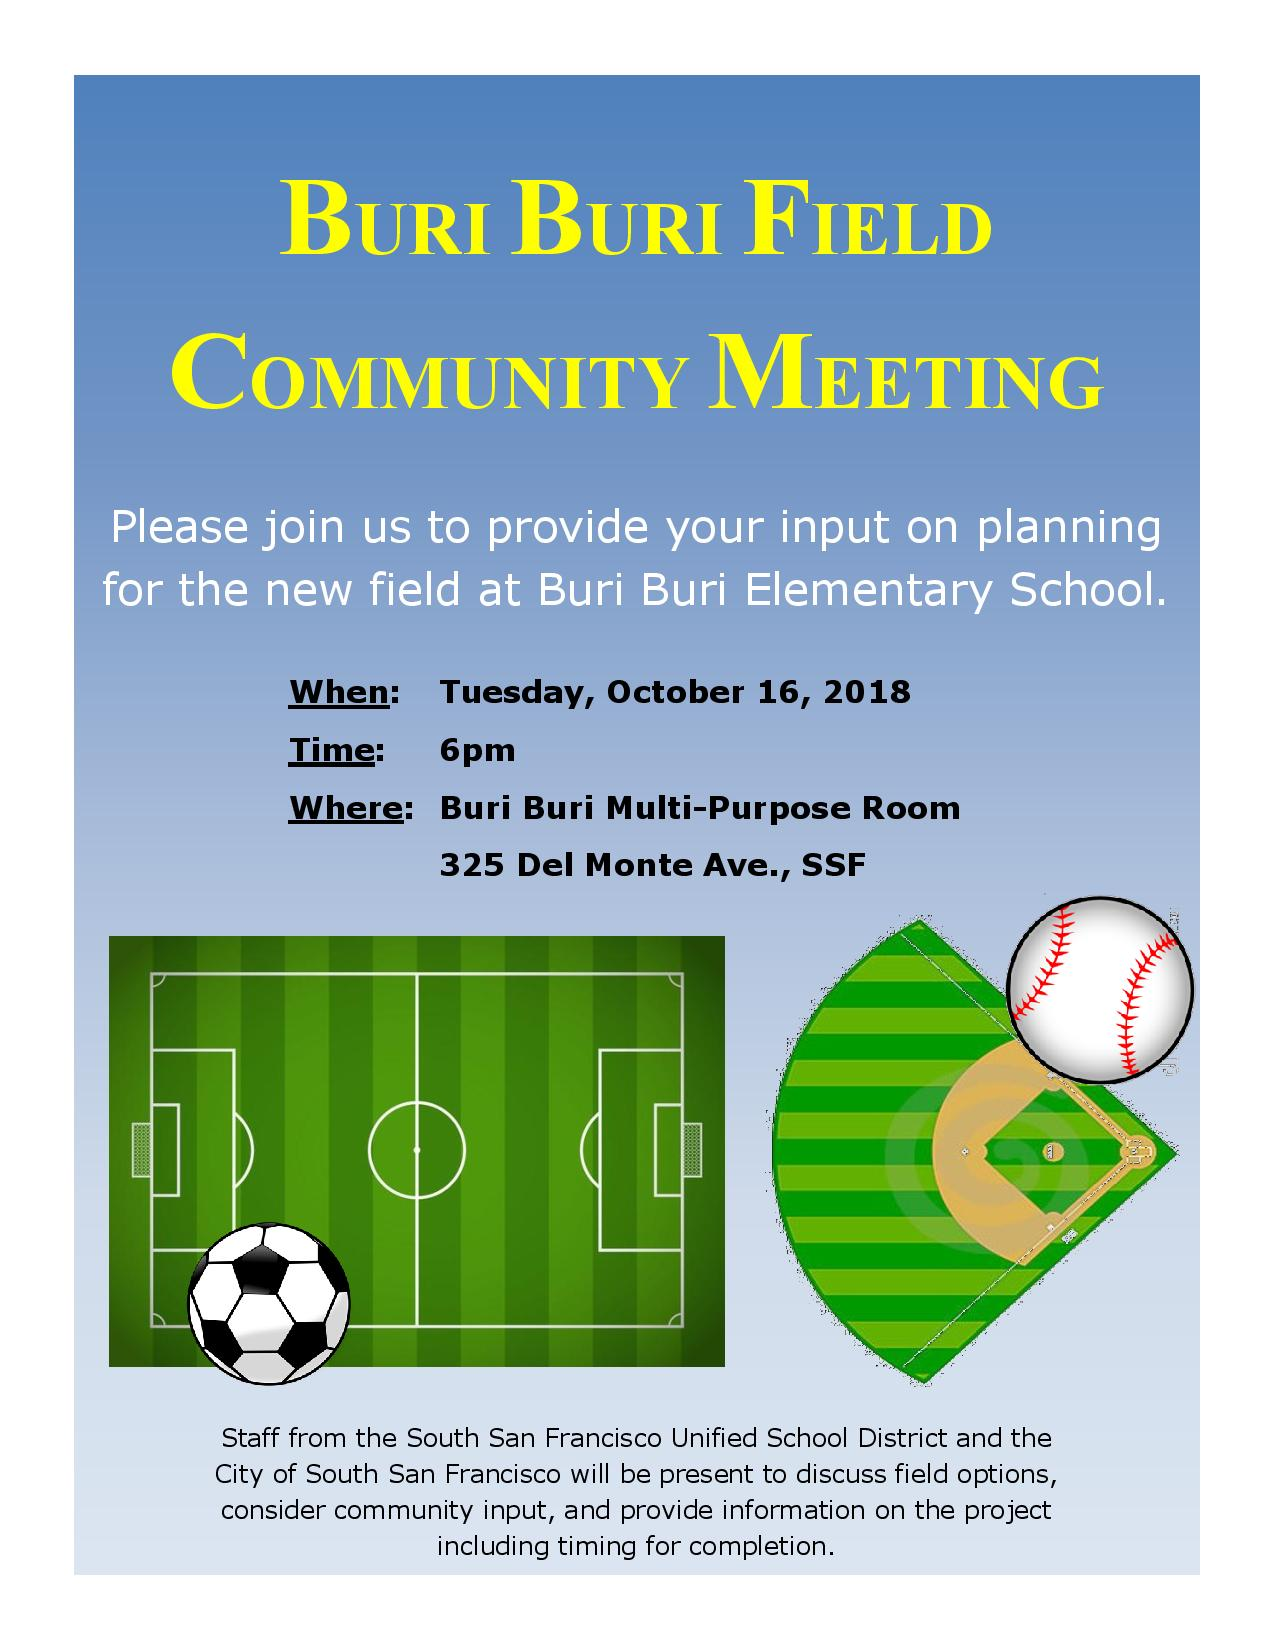 Buri Buri Field Meeting Set for October 16th